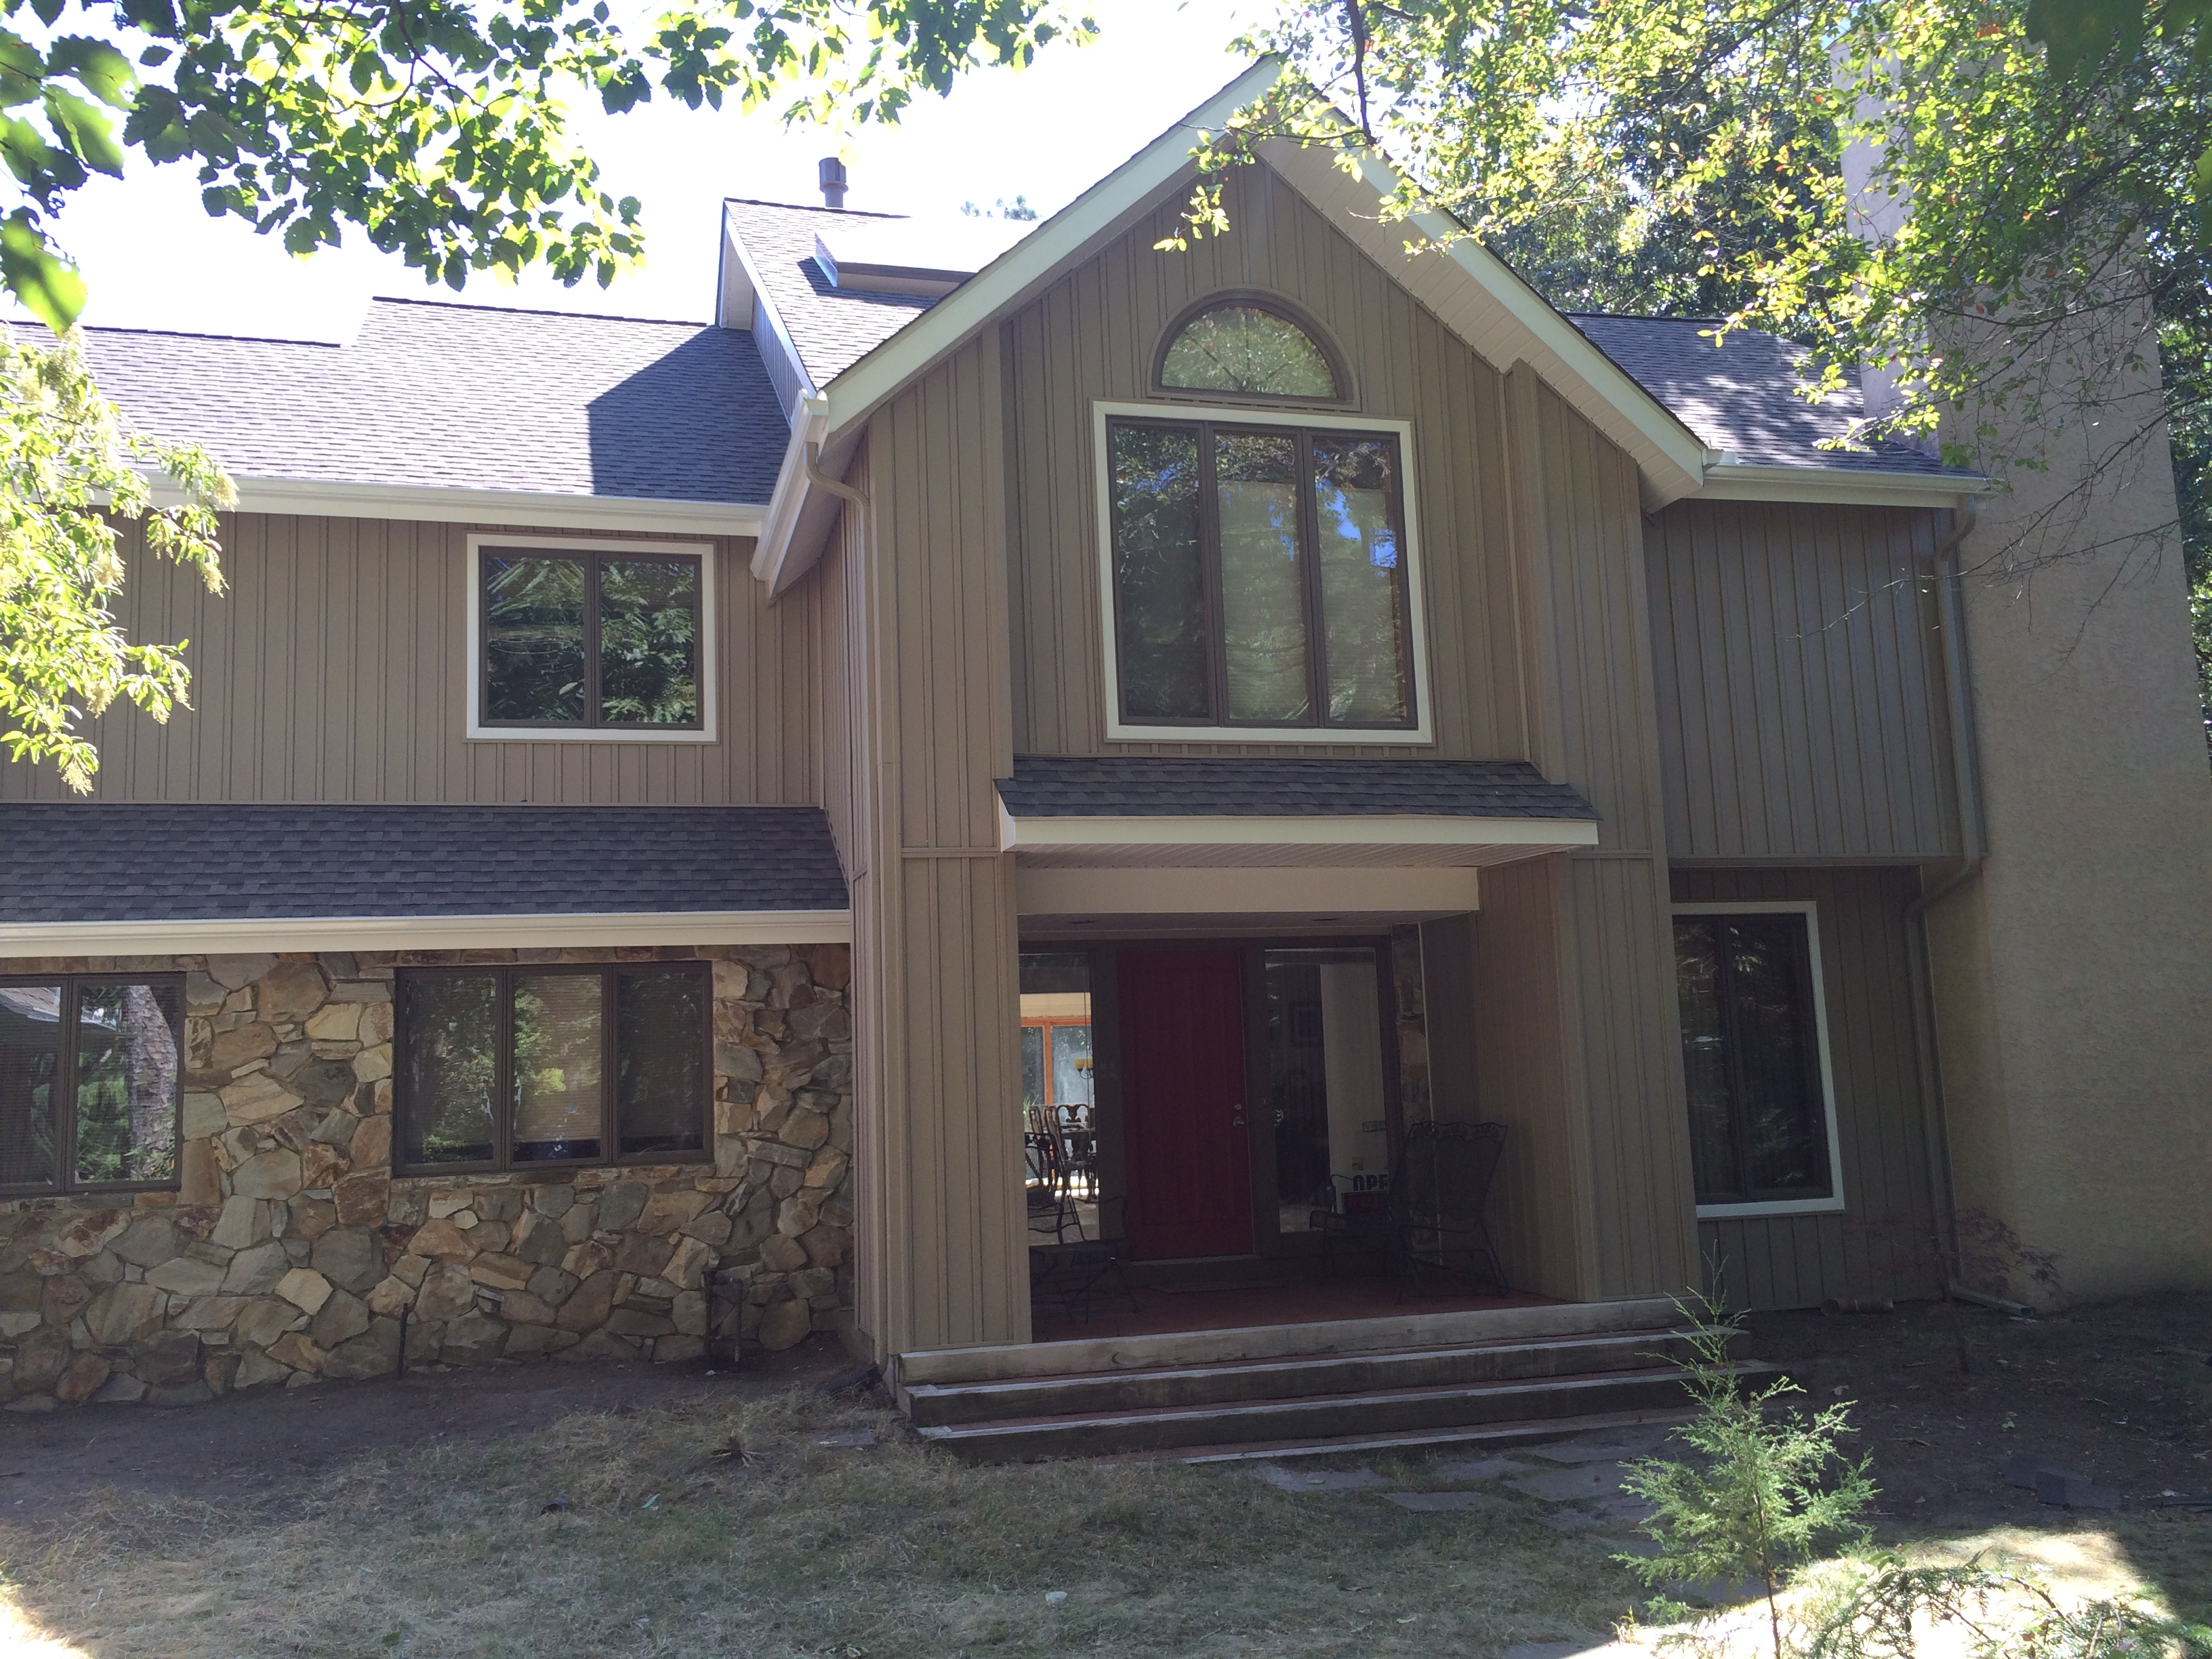 Gaf Timberline Hd Lifetime Roofing System With Weathered